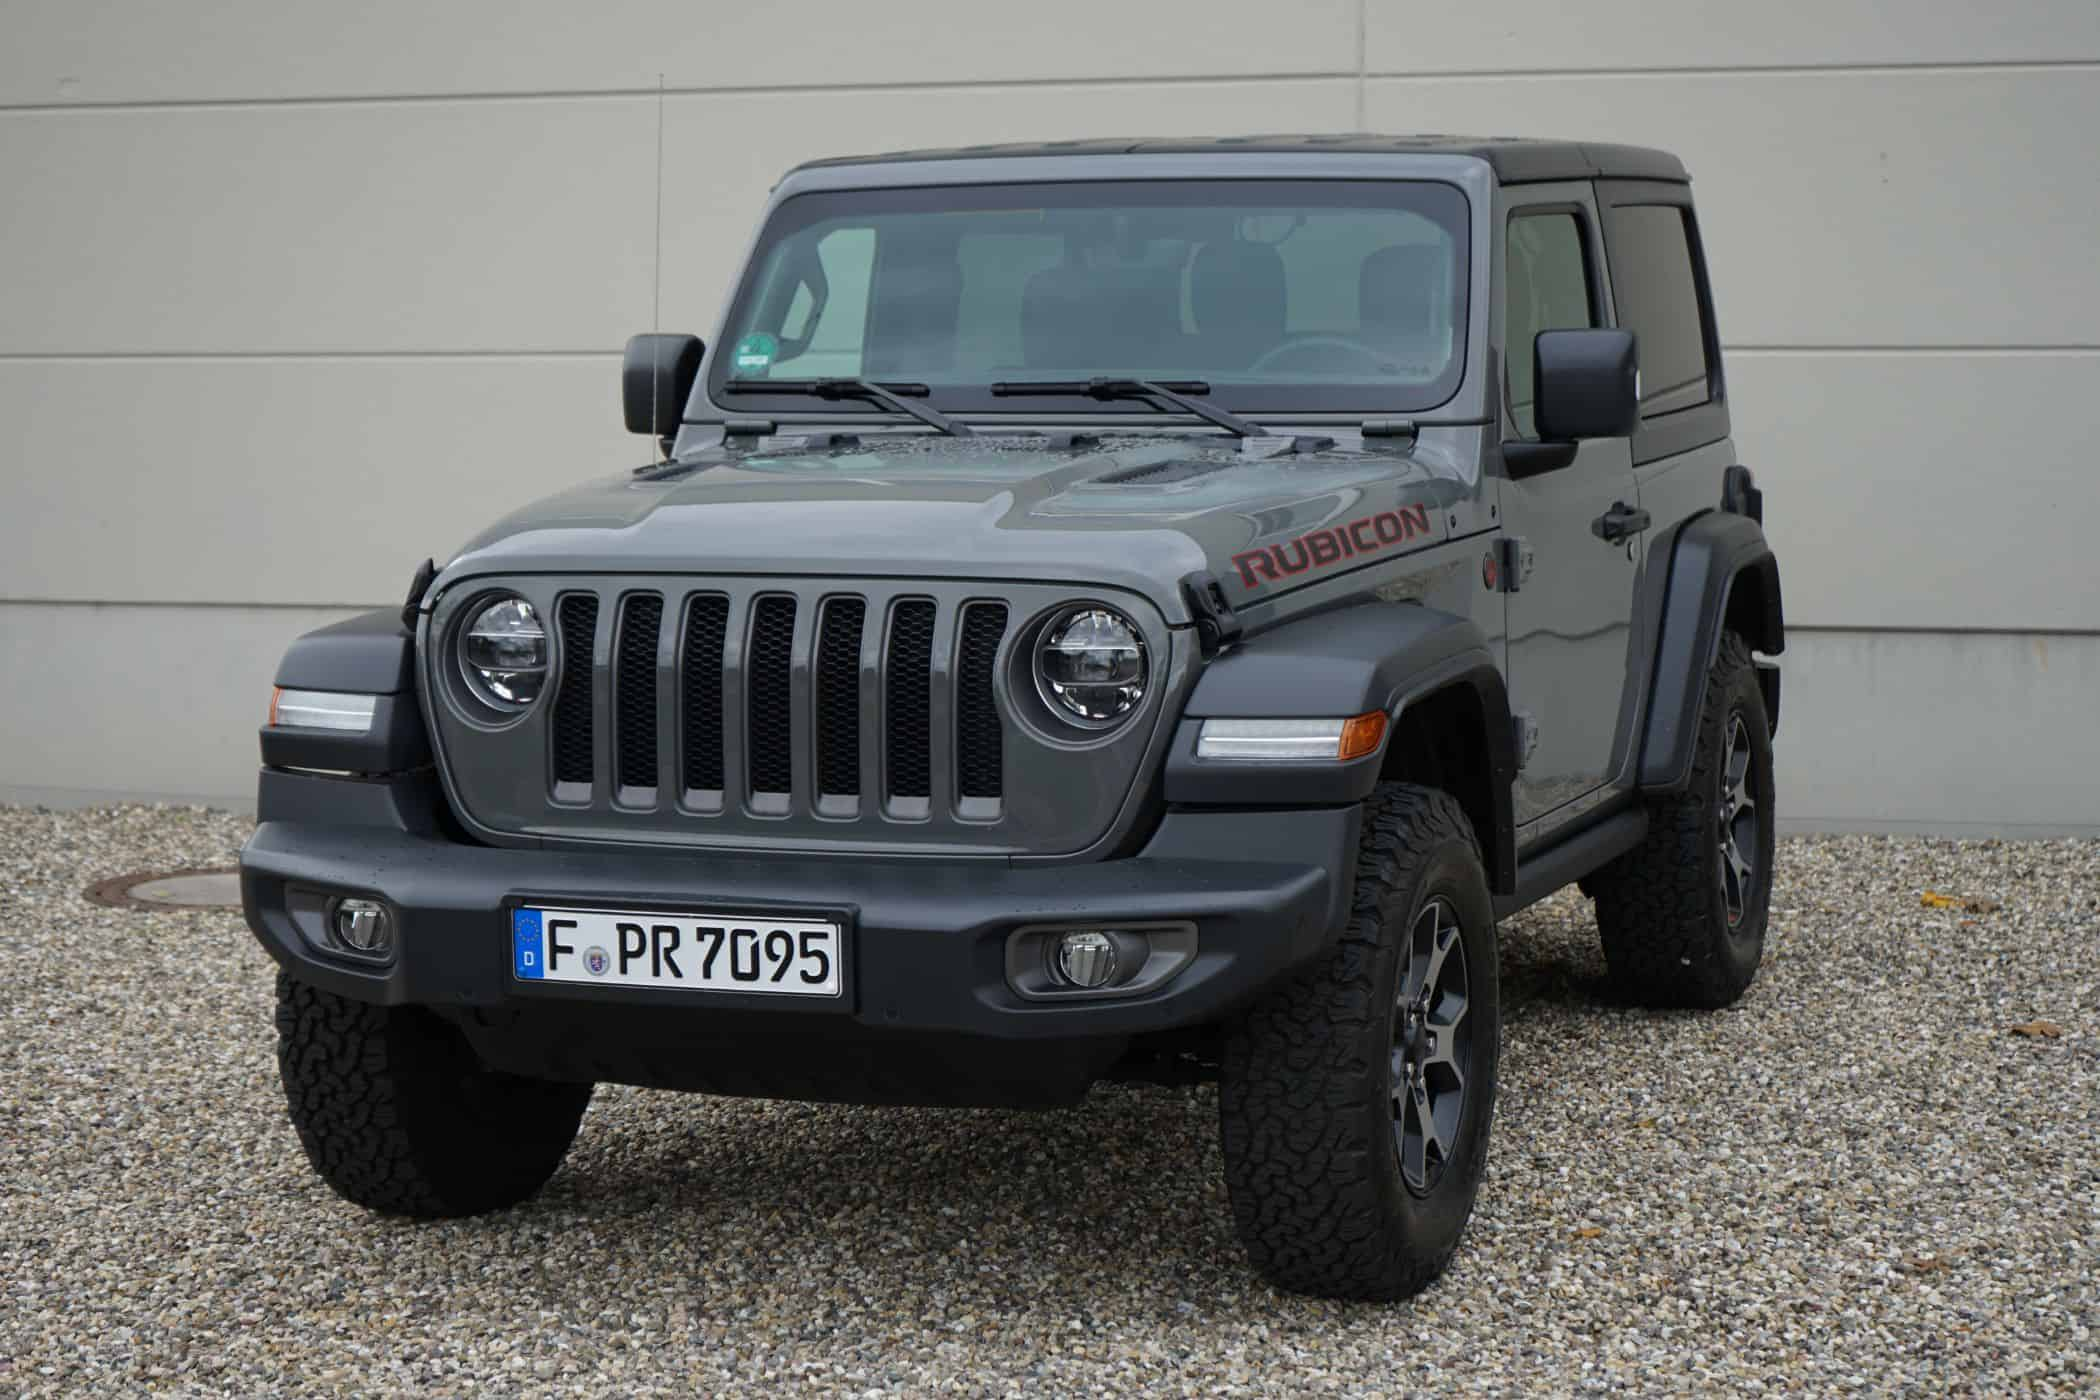 2020 Jeep Wrangler Rubicon Exterior and Interior